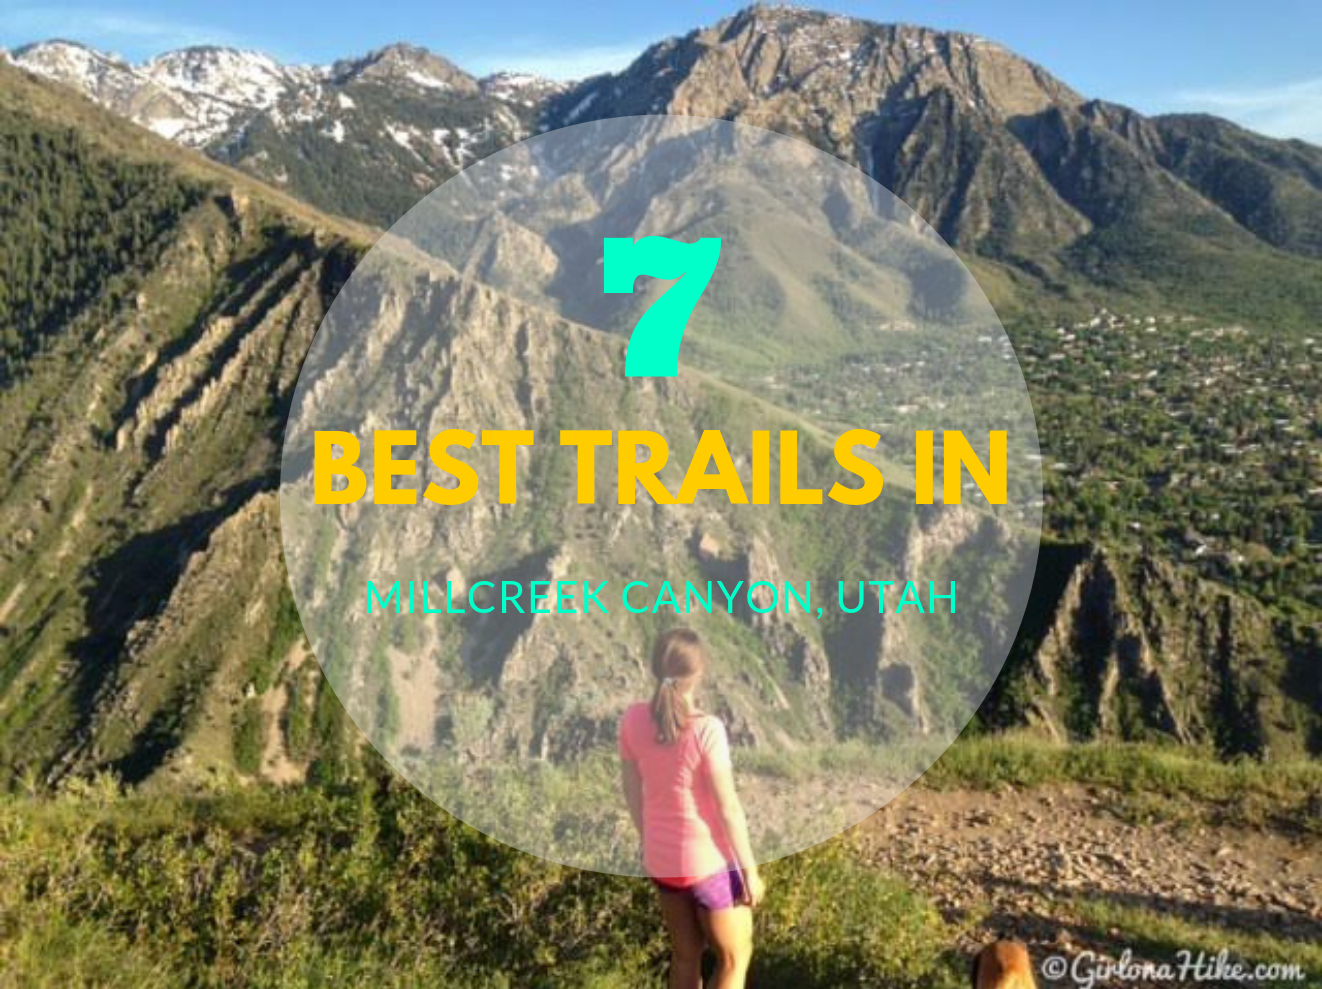 The 7 Best Trails in Millcreek Canyon, Hiking in Utah with Dogs